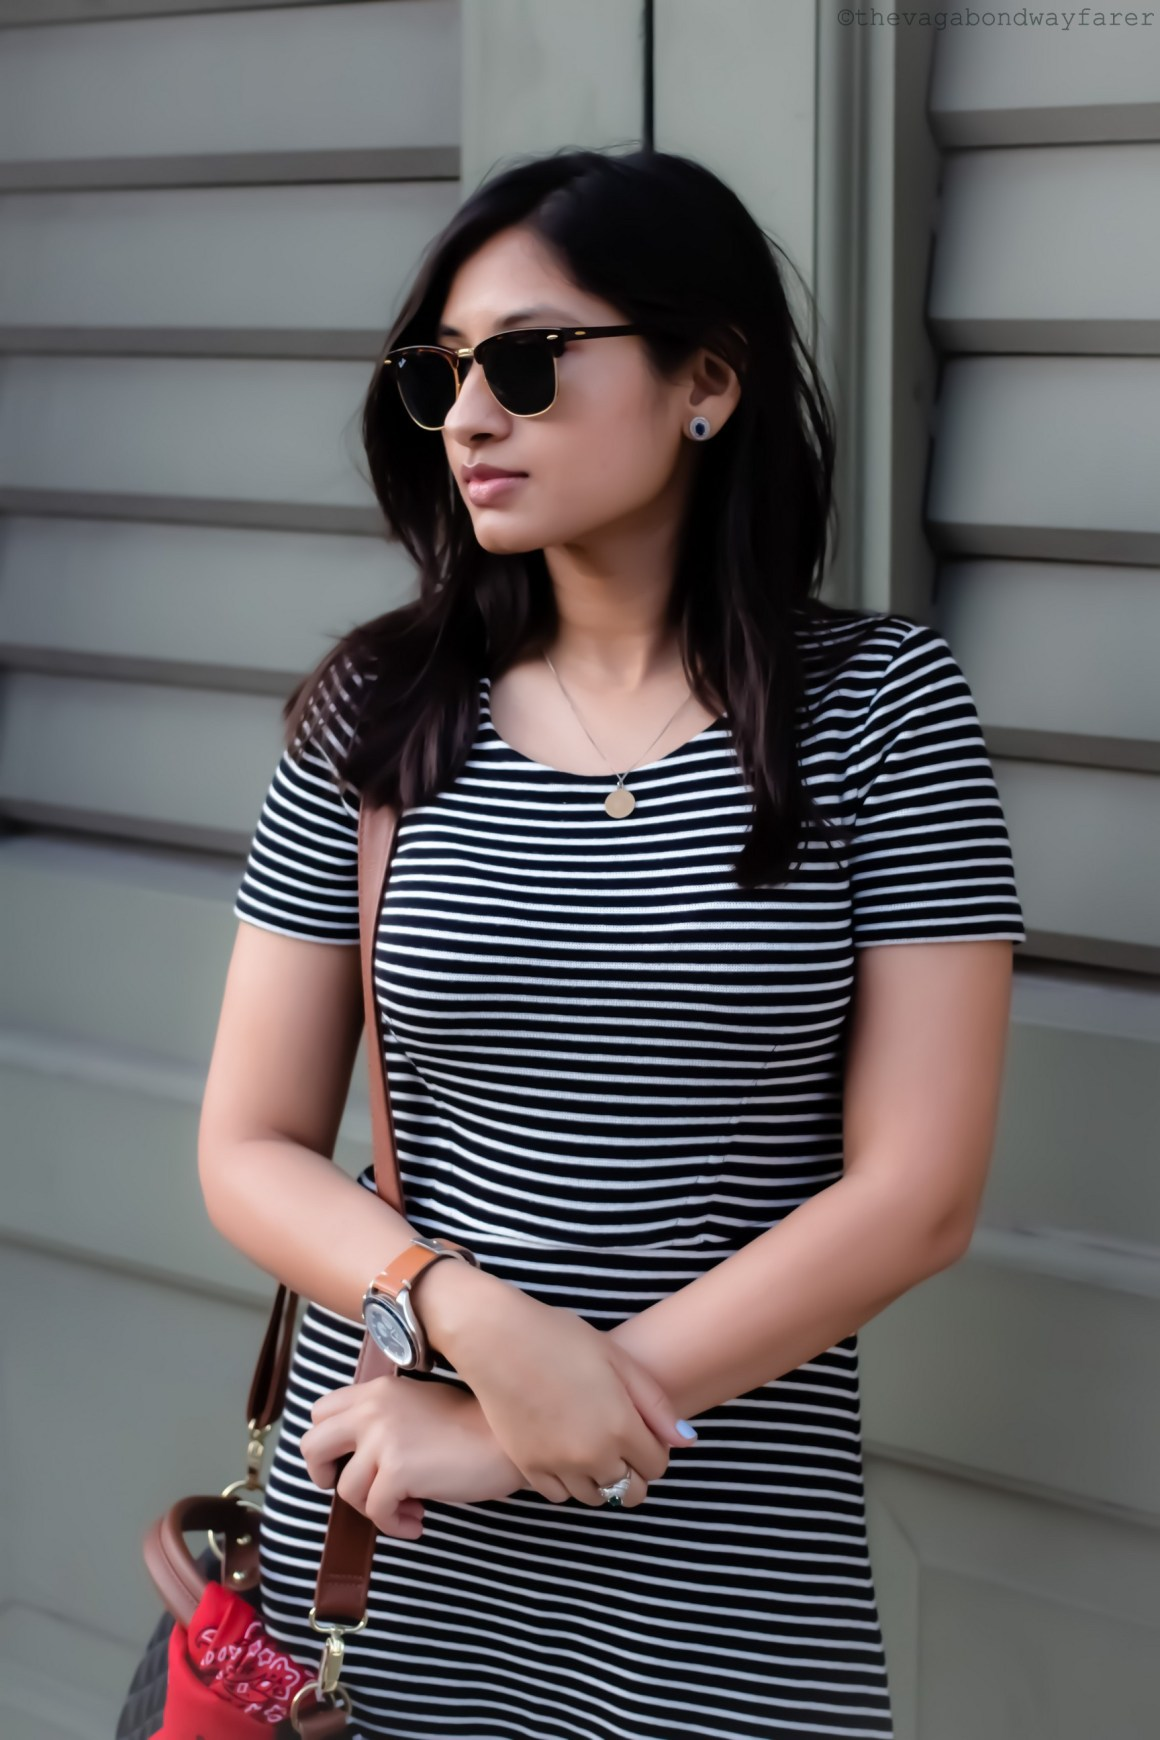 Wearing Ray-Ban Clubmasters, Madewell dress. Parisian Stripes - The Vagabond Wayfarer